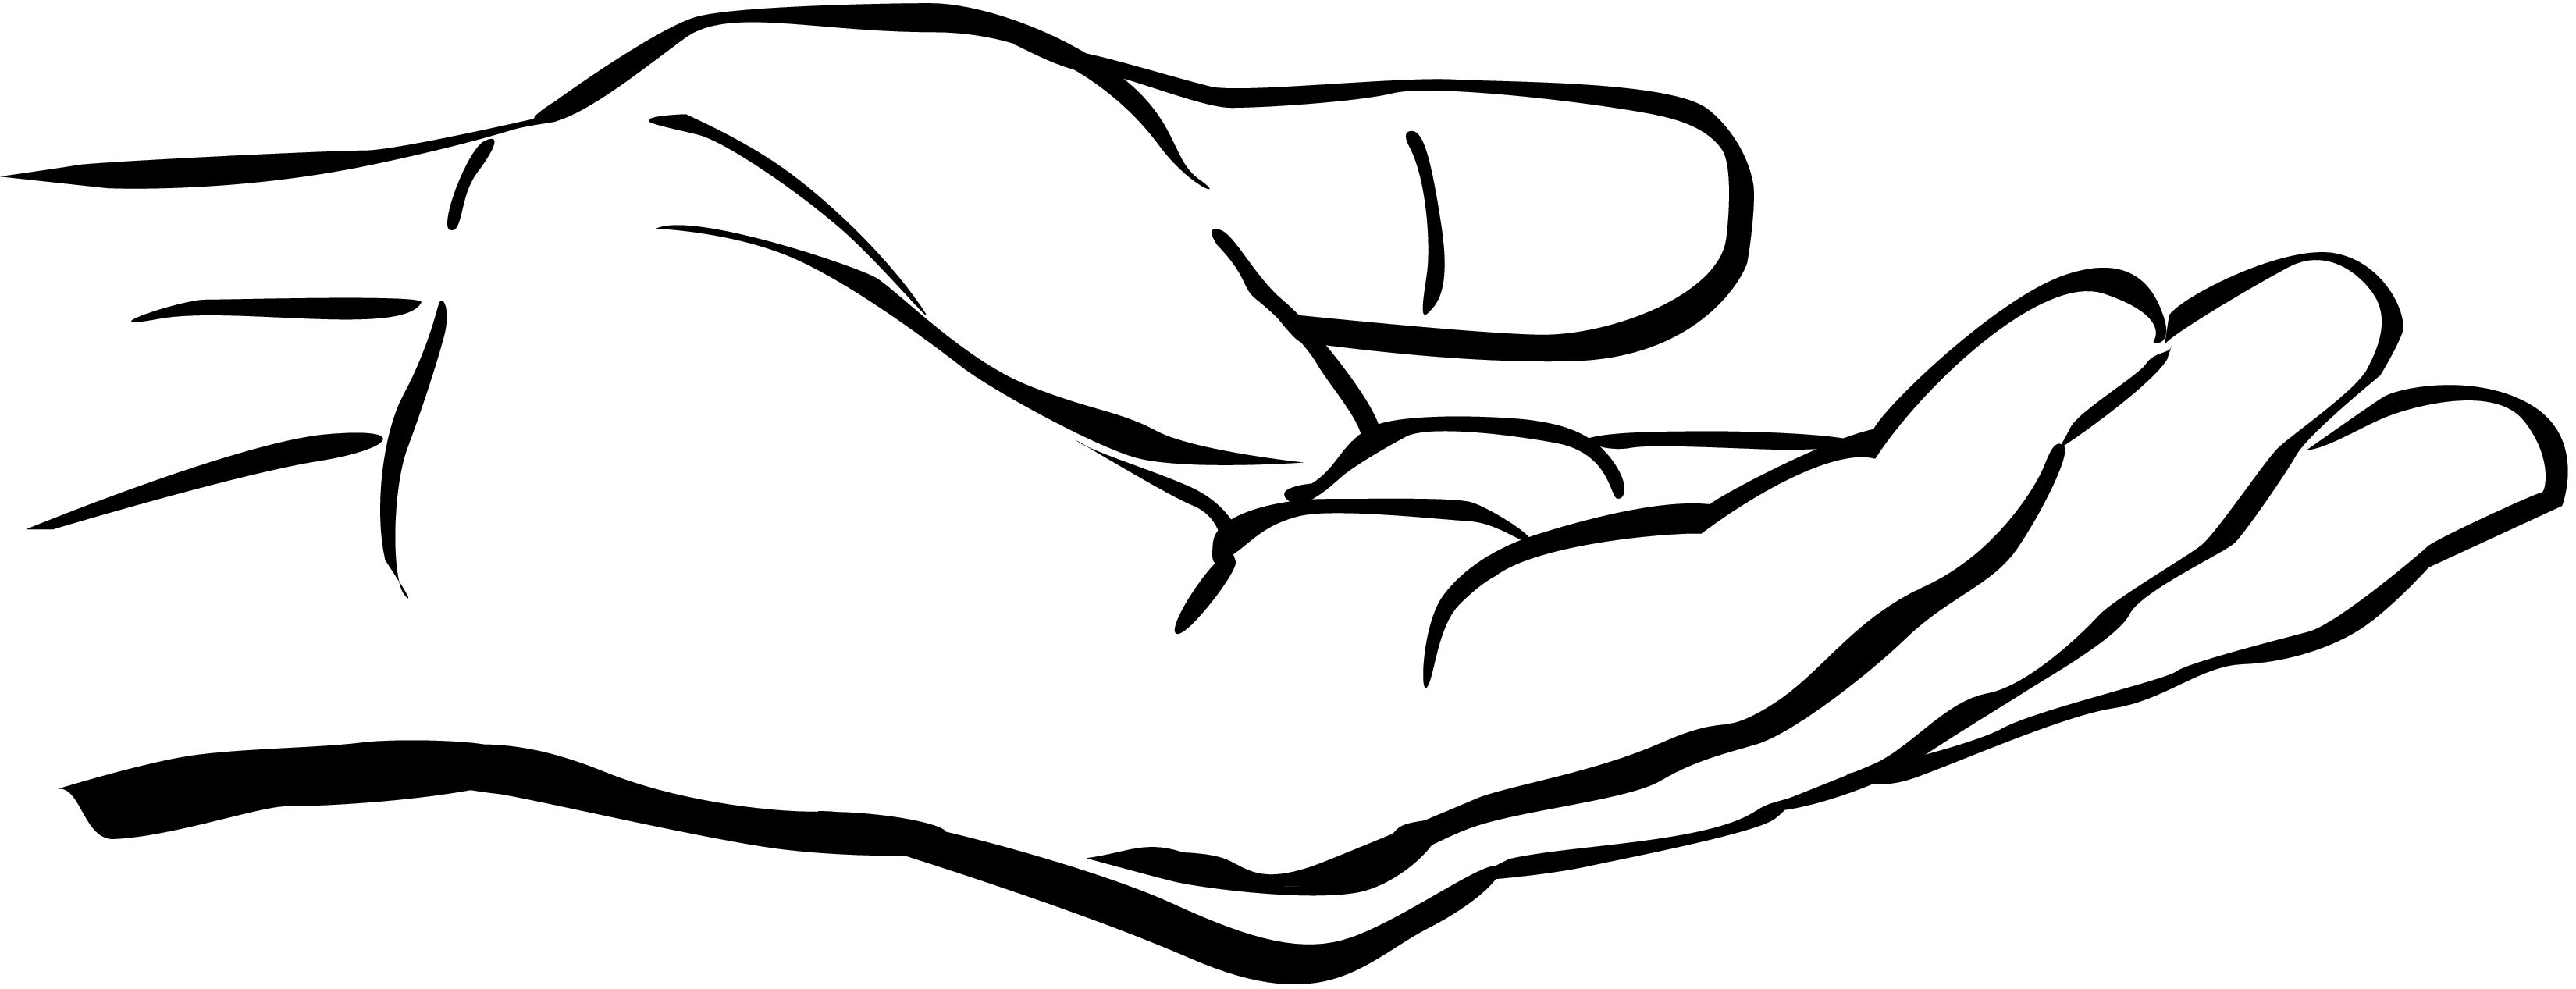 Clipart hands. God s hand of